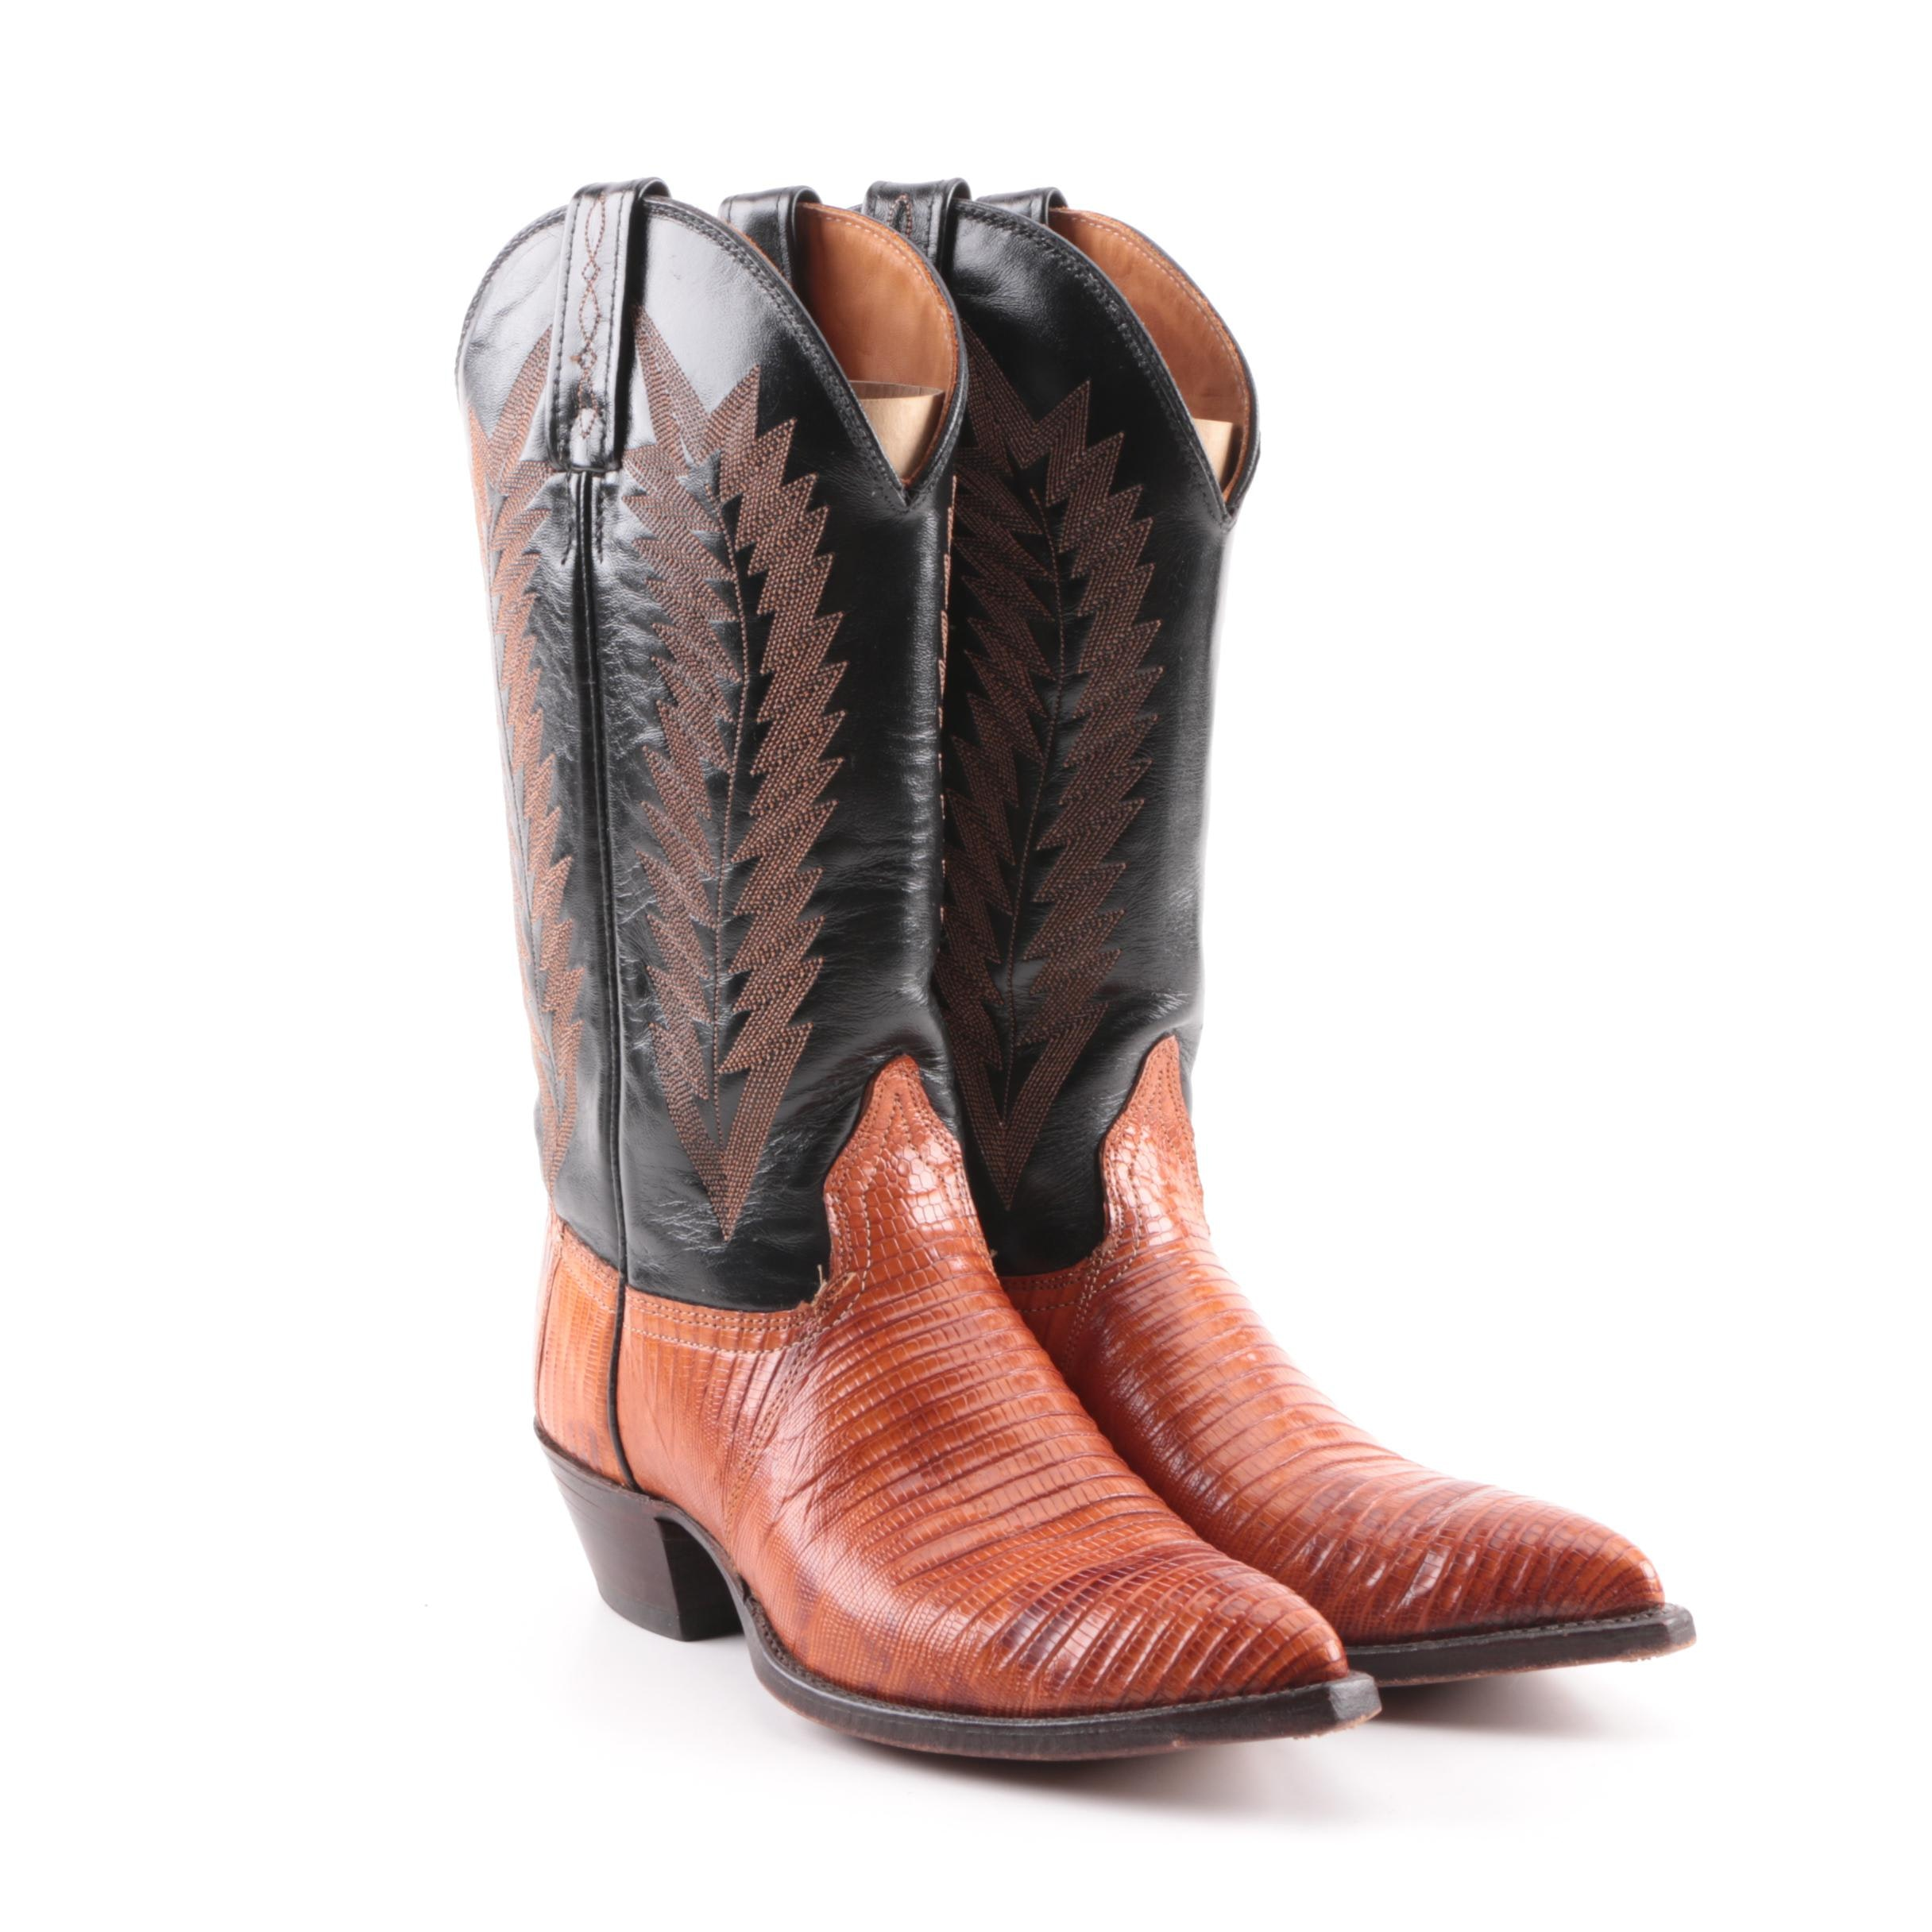 Women's Vintage J. Chisholm Leather and Lizard Skin Western Boots